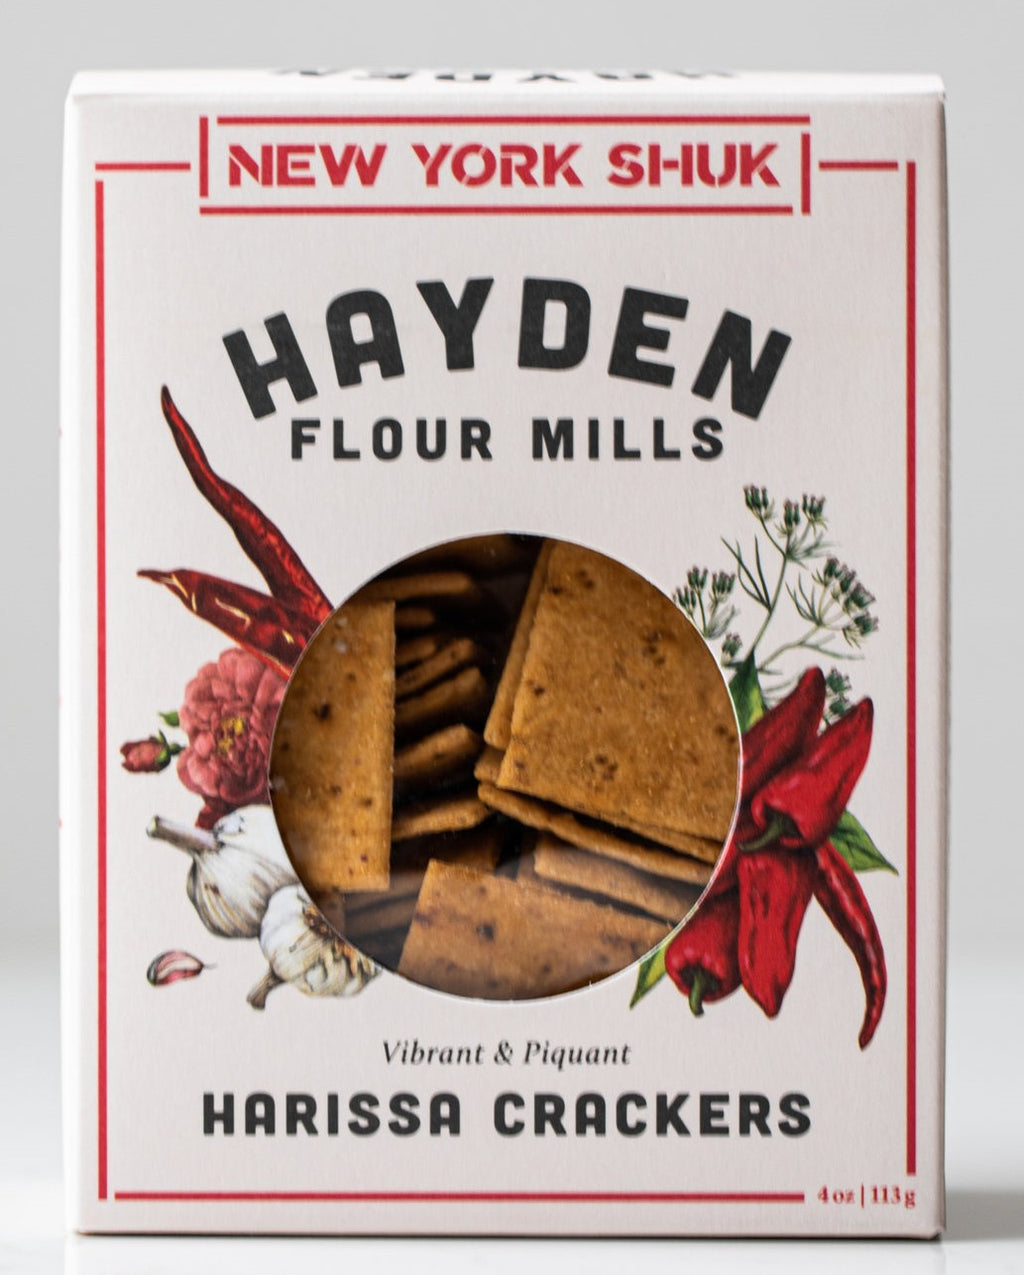 Harissa Crackers - Hayden Flour Mills with New York Shuk